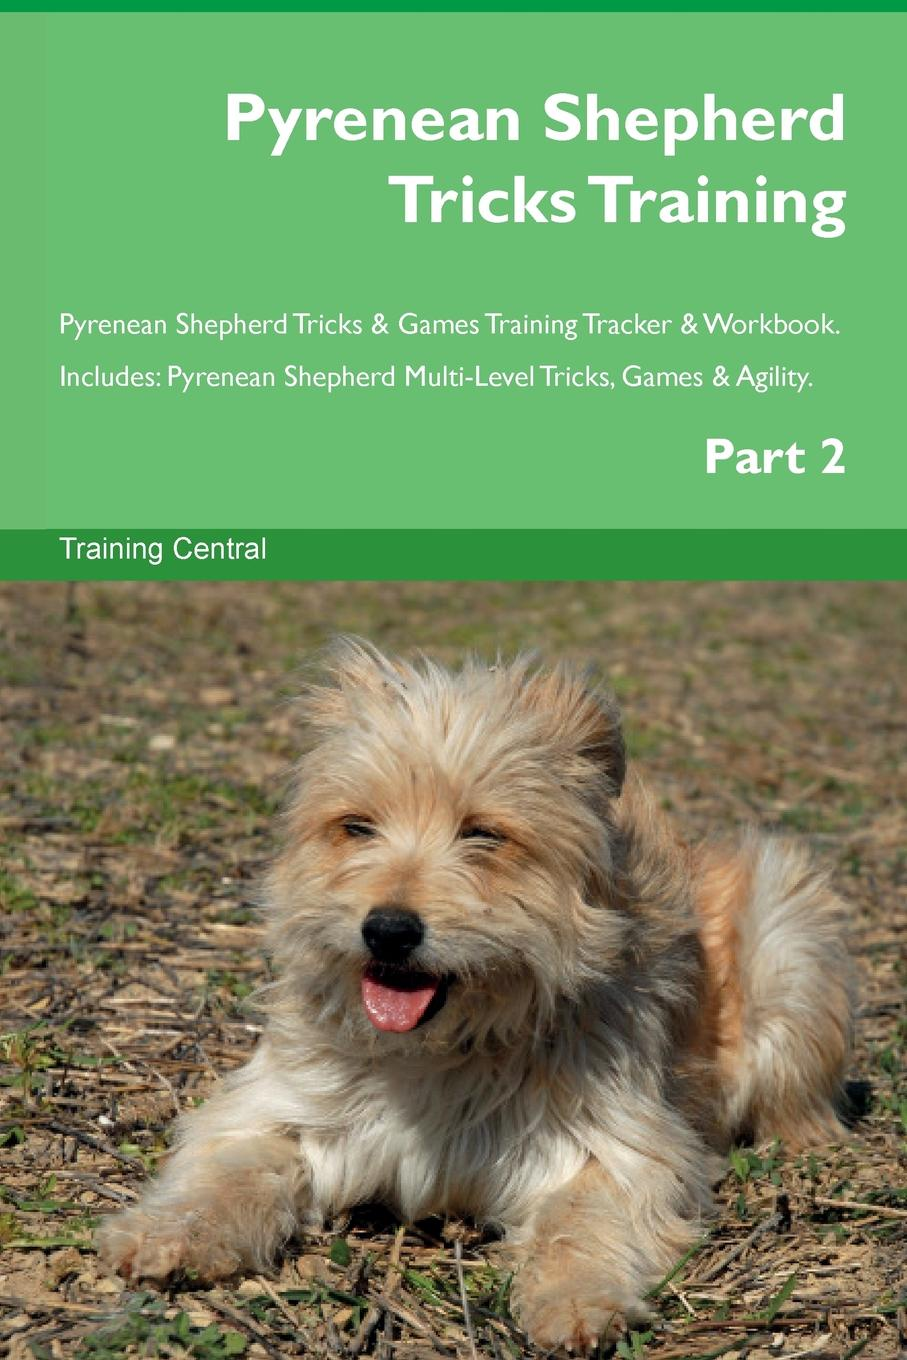 Training Central Pyrenean Shepherd Tricks Training Pyrenean Shepherd Tricks . Games Training Tracker . Workbook. Includes. Pyrenean Shepherd Multi-Level Tricks, Games . Agility. Part 2 this book loves you